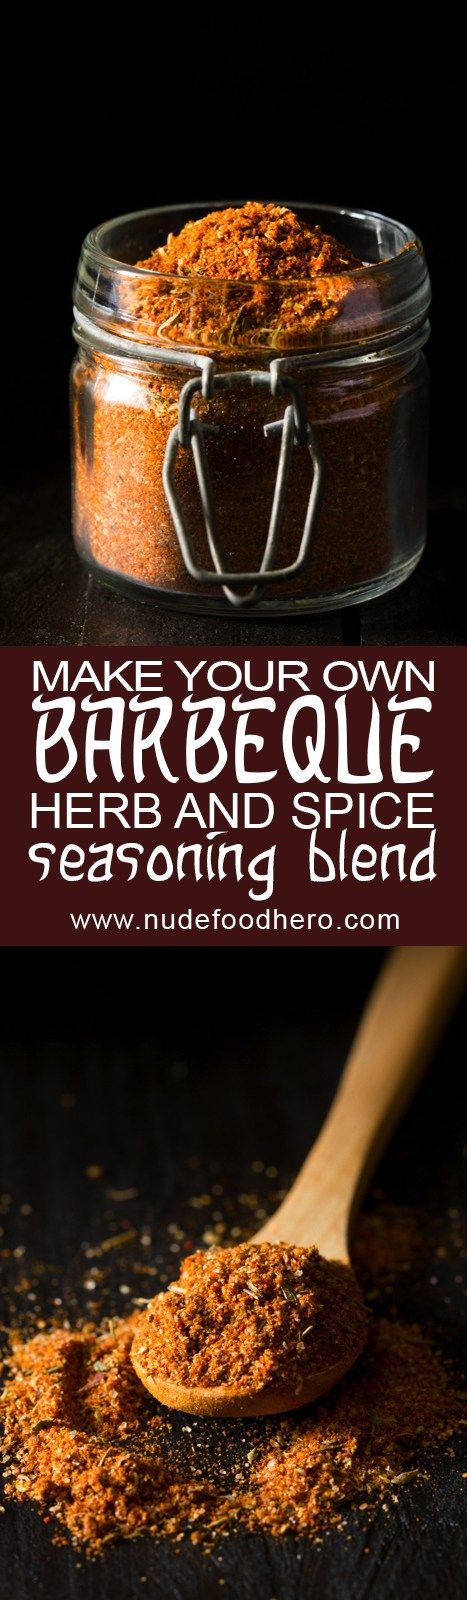 Step up you DIY BBQ food game by making your very own BBQ herb and spice blend - super easy to make and super delicious too!